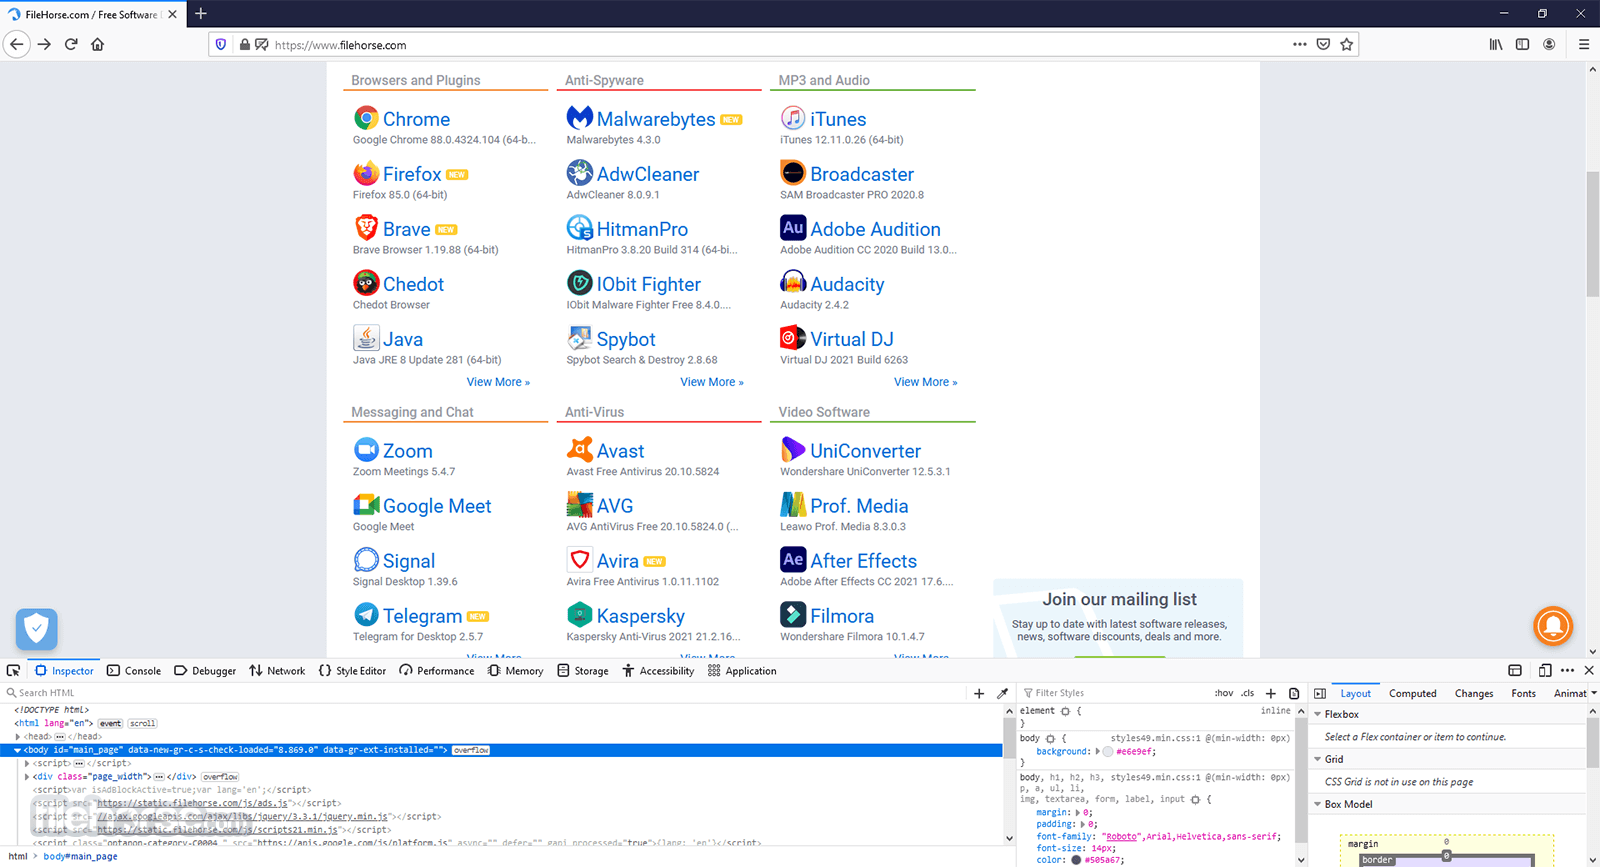 Firefox 56.0.2 (32-bit) Screenshot 2